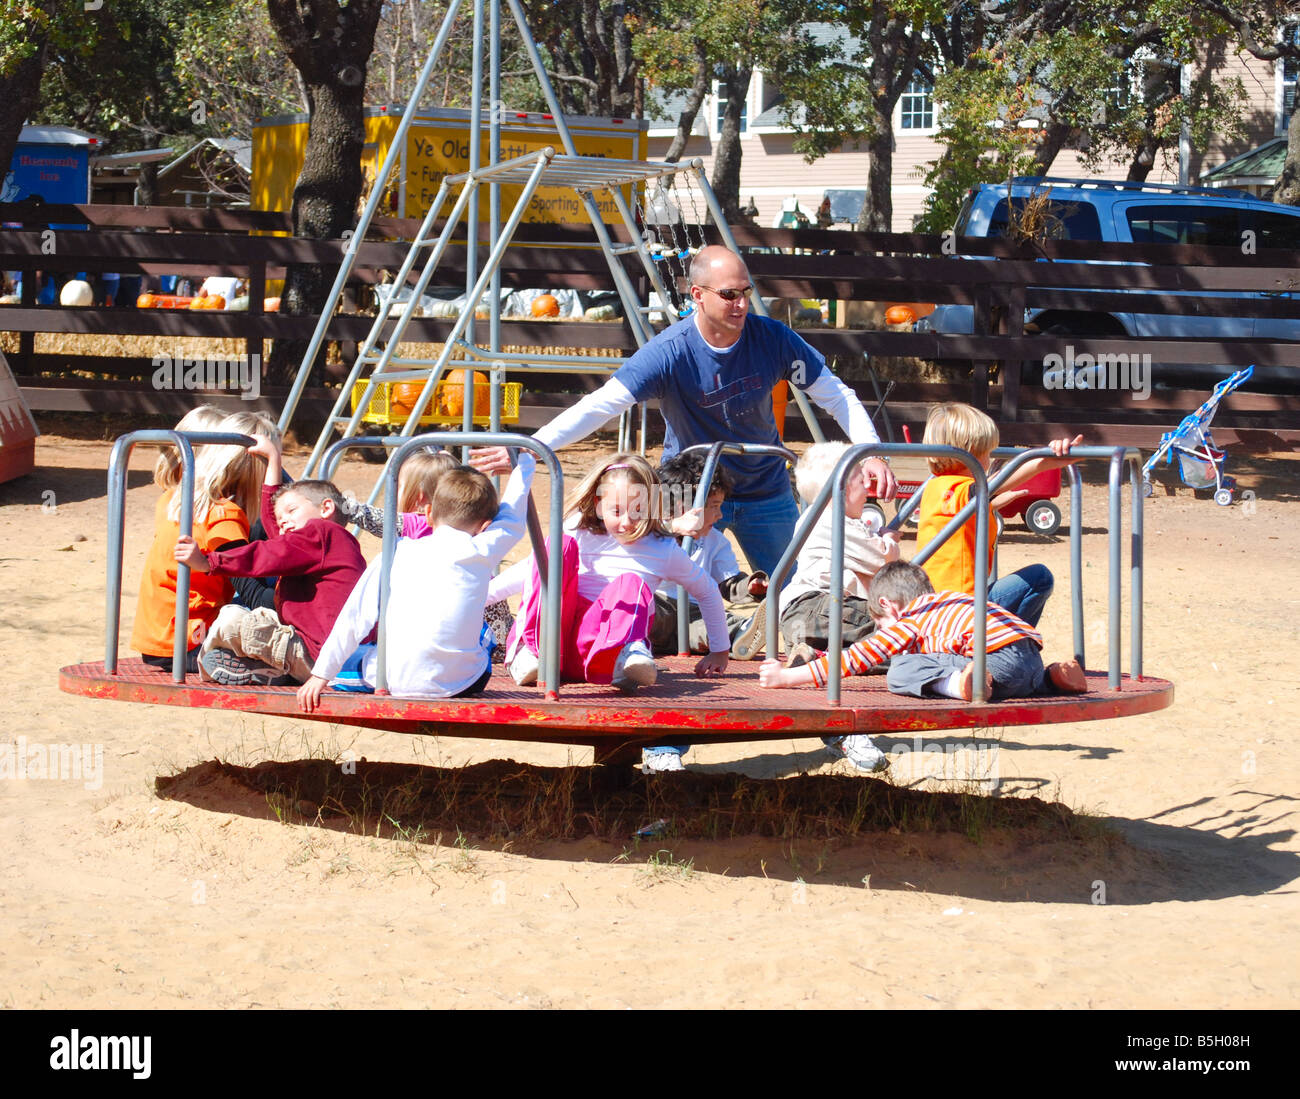 Father Pushing Kids On A Merry Go Round At Playground